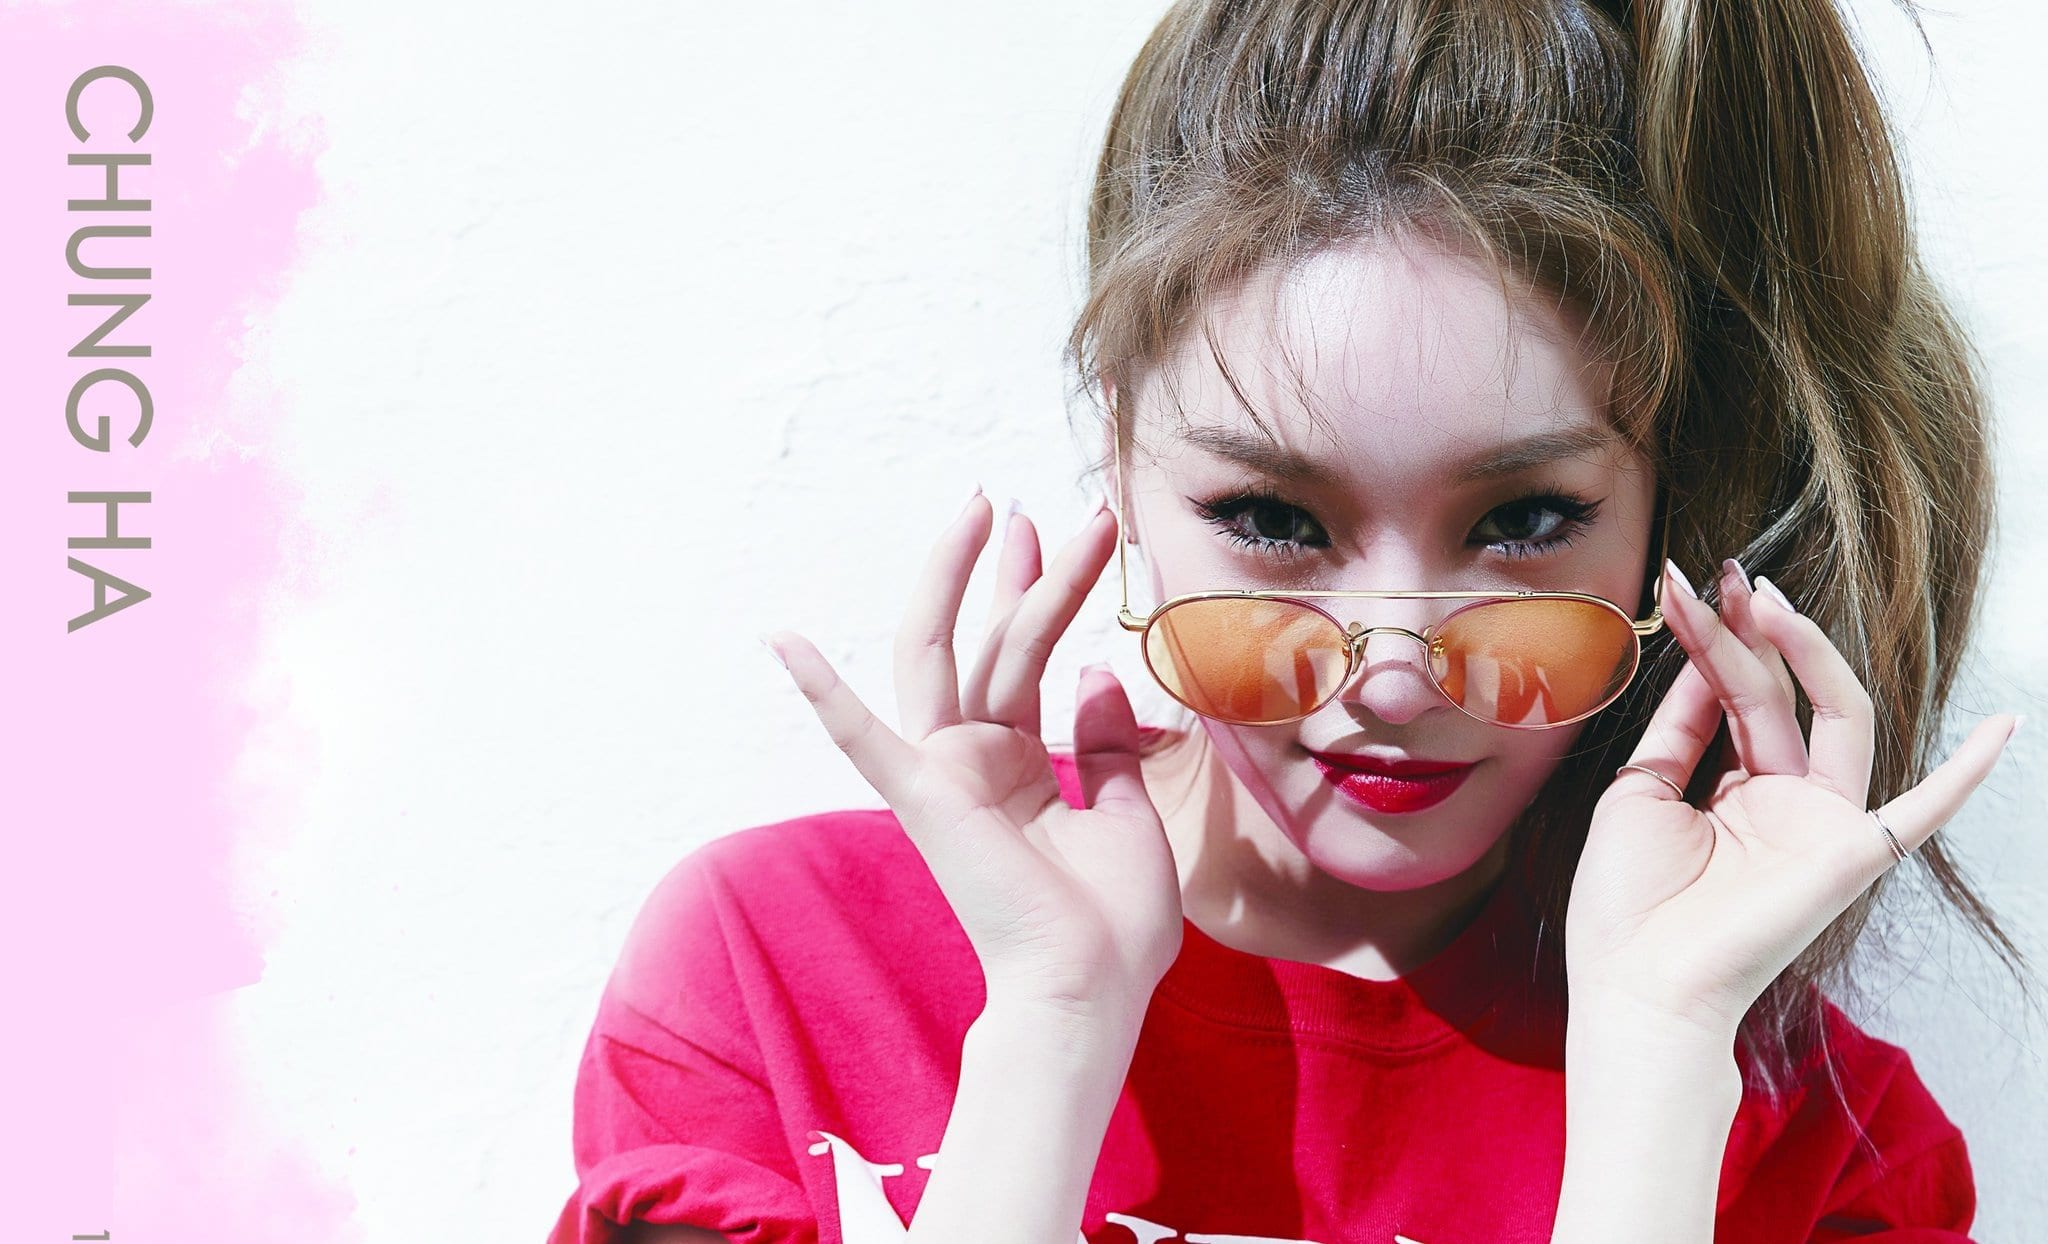 I.O.I's Chungha Drops First Teaser Image For Upcoming Solo Debut